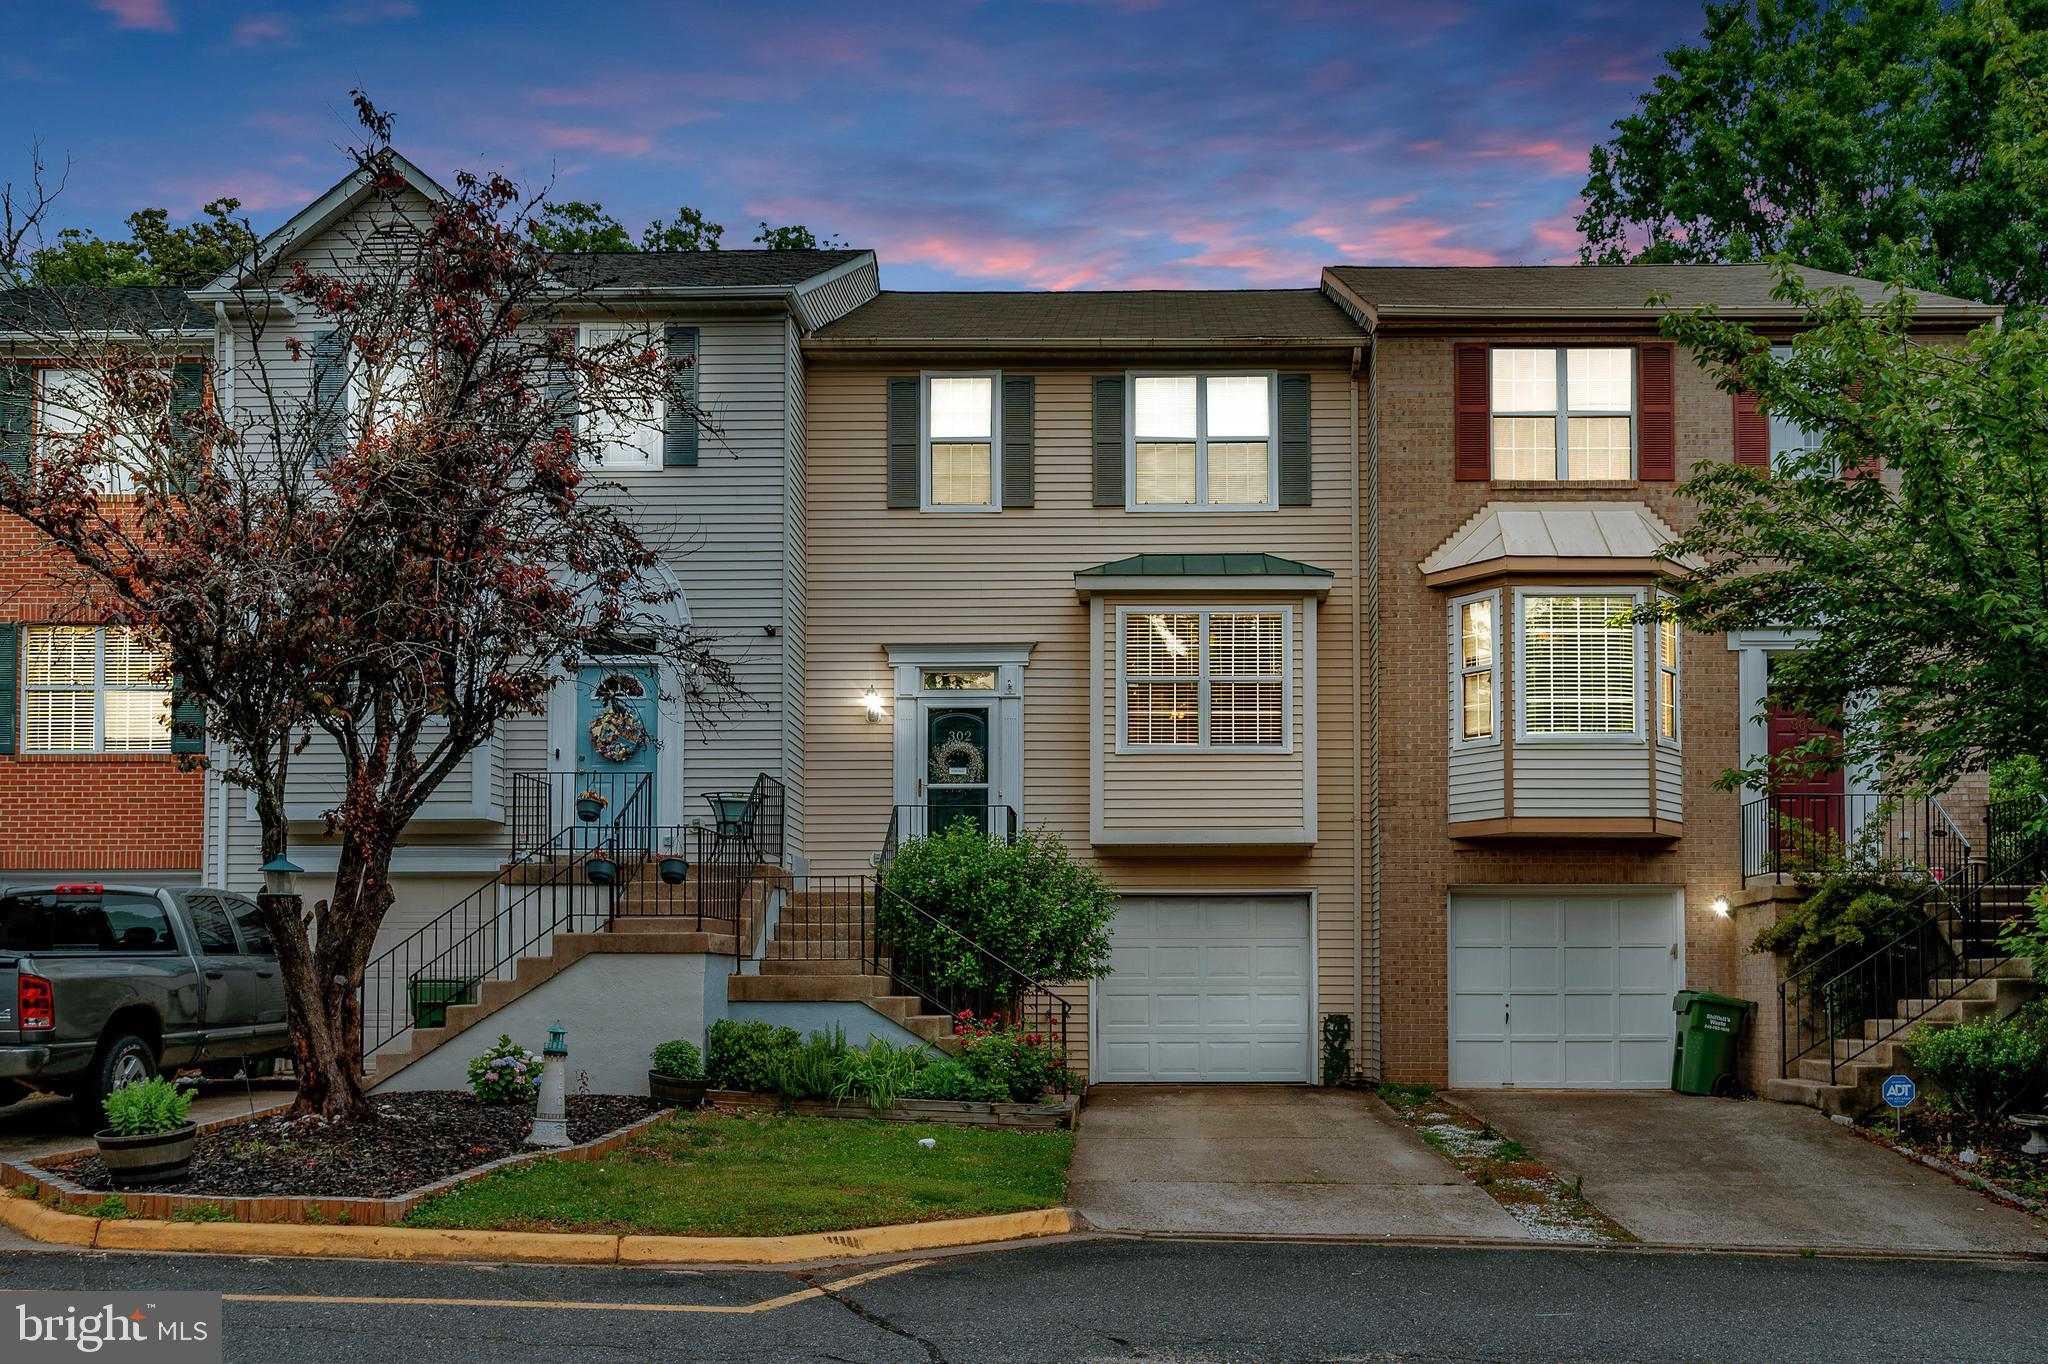 Welcome Home!   Conveniently located less than 5 miles to 95 & commuter lots.  This move in ready 3 lvl townhome w/ one car garage will impress.  Tucked back on a quiet  cul de sac, You will be warmly greeted the moment you walk in !  The bight eat in kitchen  includes a pantry w/ plenty of counter space and room for a small table.  Formal dining room and living room w/ gas fireplace.  Sliding door leads to deck overlooking private yard backing to trees.  Upper level  2 master suites. 1 w/ skylight soaking tub and sep shower  the 2nd full bath  shower/tub combo   Lower level.  is fully finished includes gas fireplace. possible 3rd bedroom  & a Half bath.  Sliding door walks out level to back yard